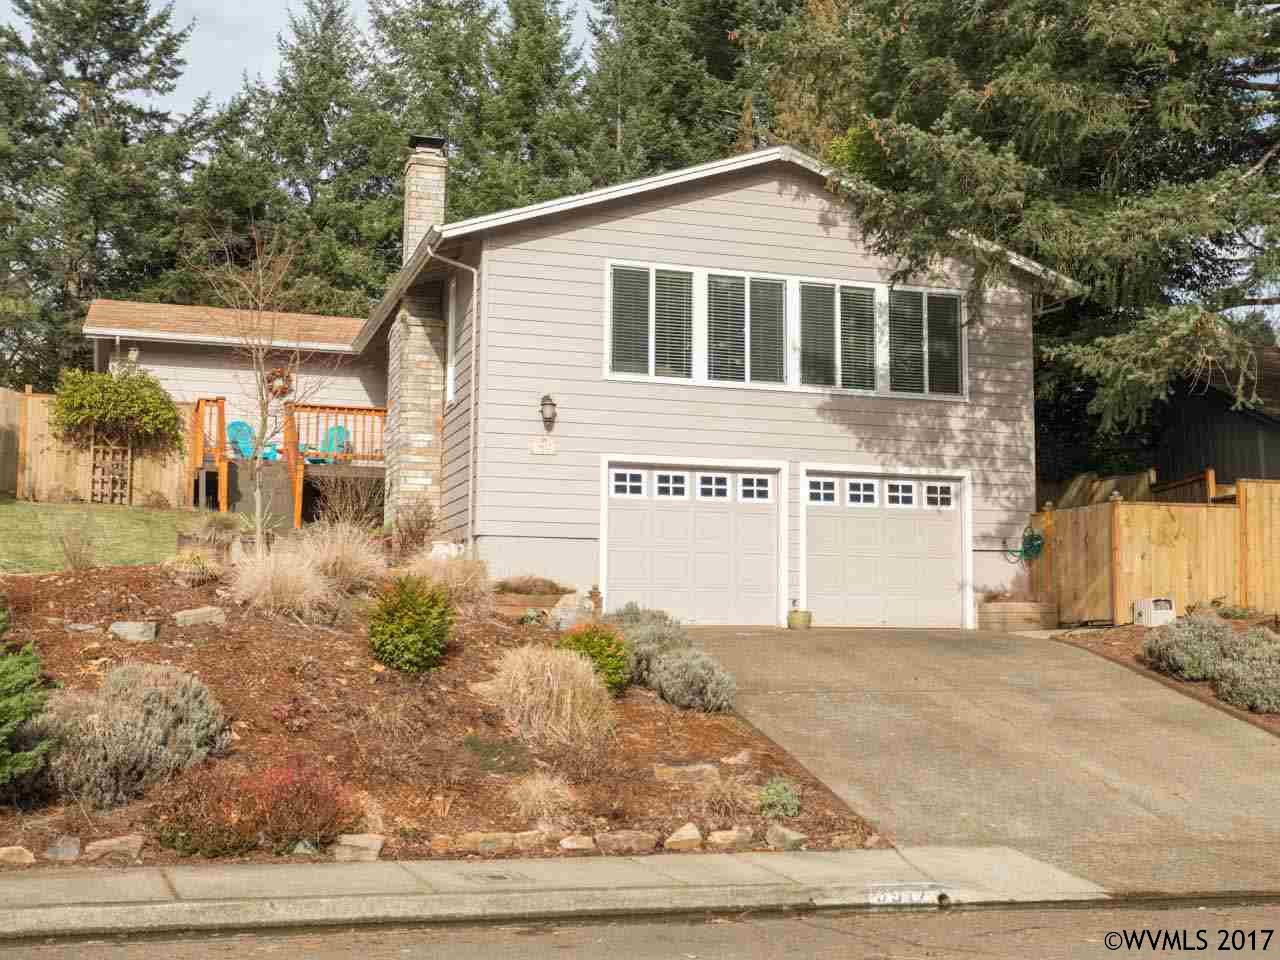 3917 Nw Jameson Dr, Corvallis, OR 97330